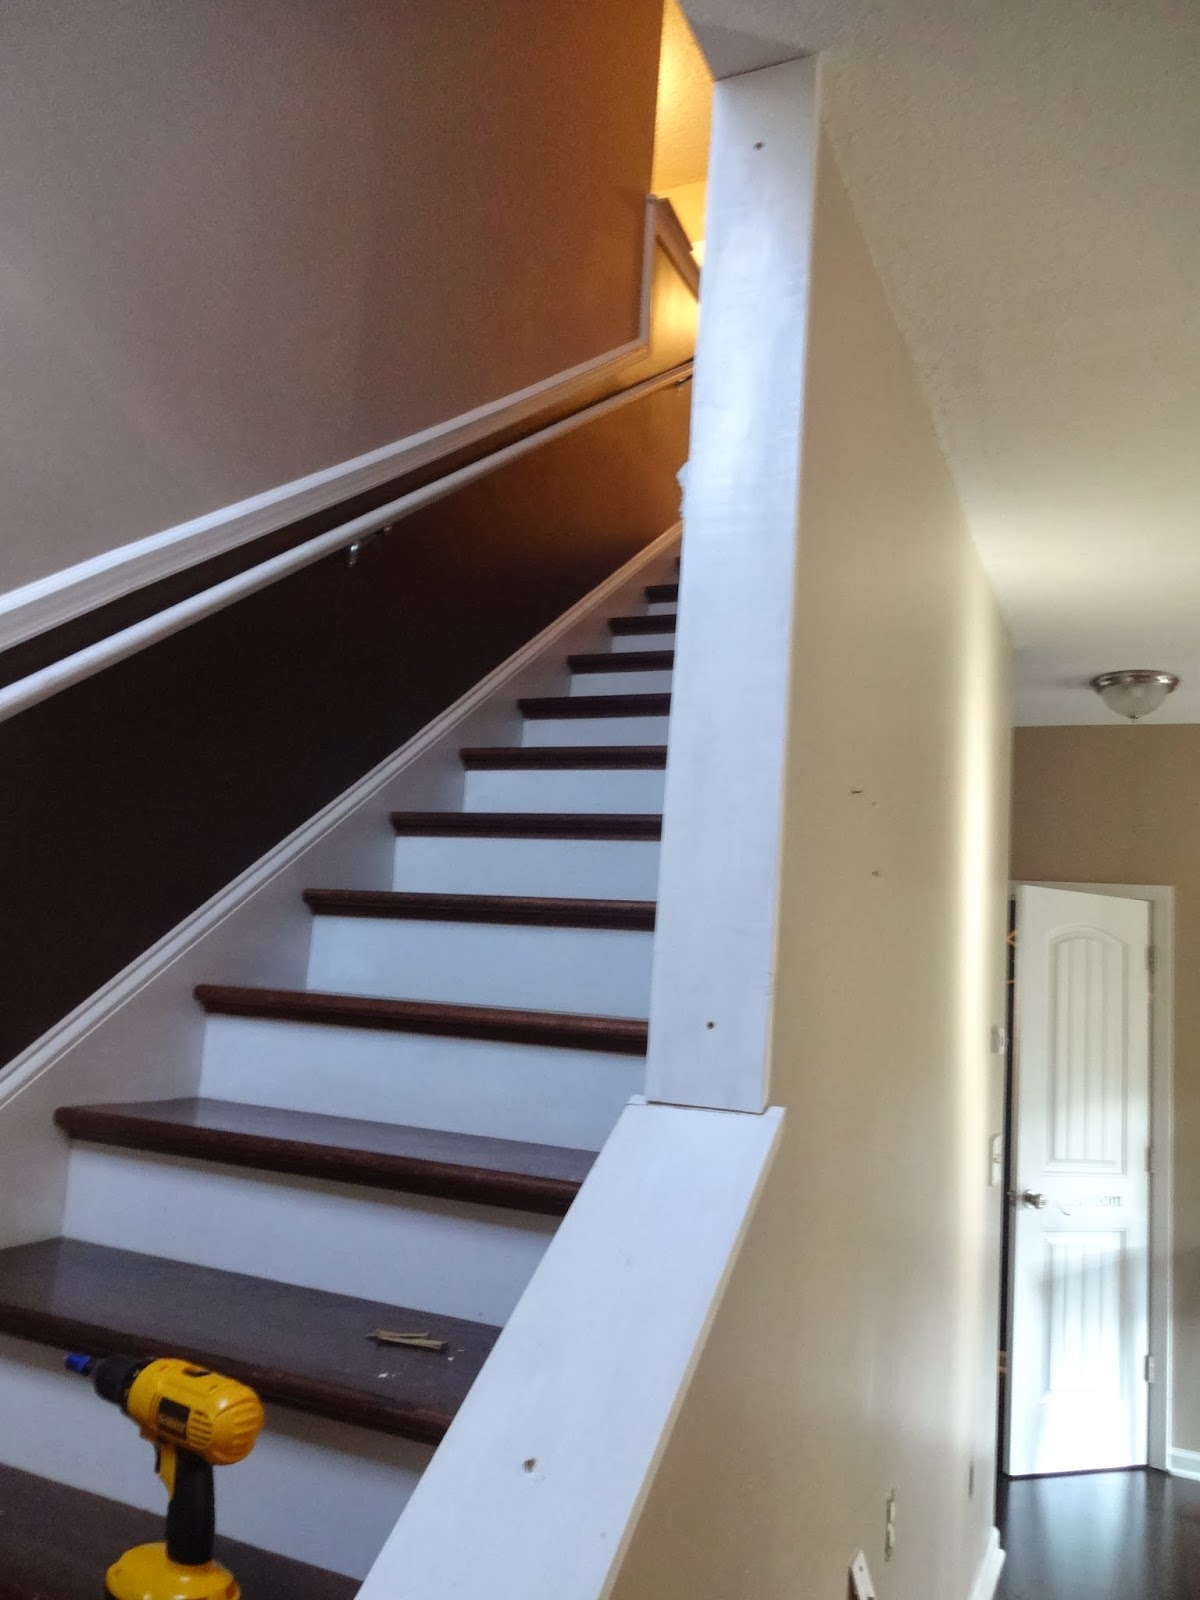 Opening Up The Doors: Opening Up The Stairwell